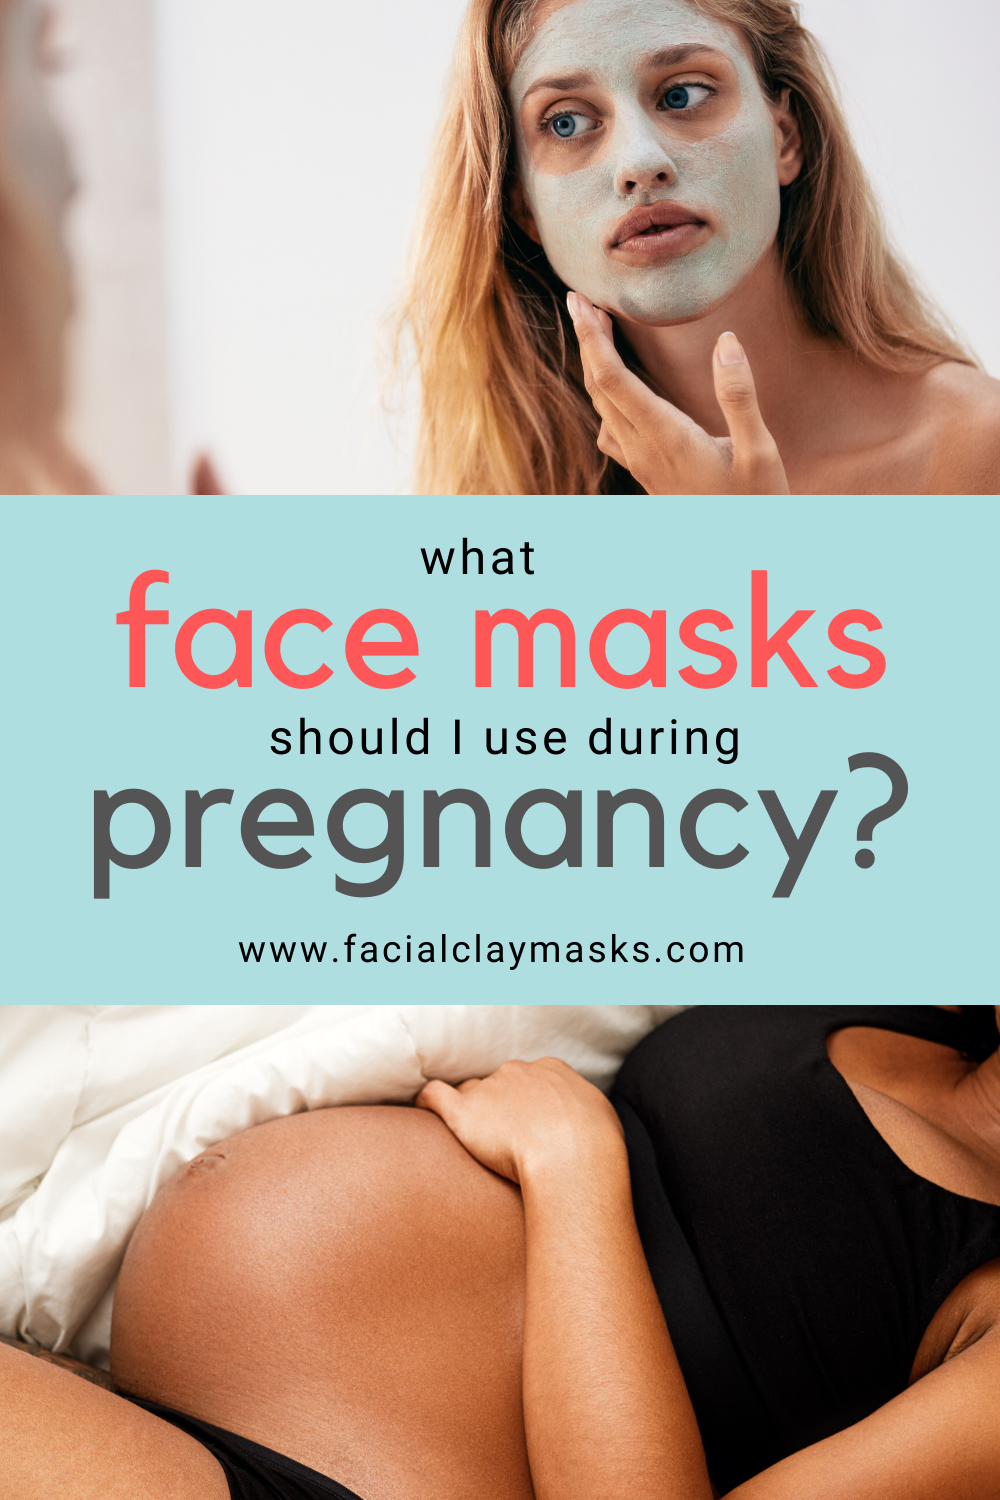 Are clay masks safe during pregnancy? 2